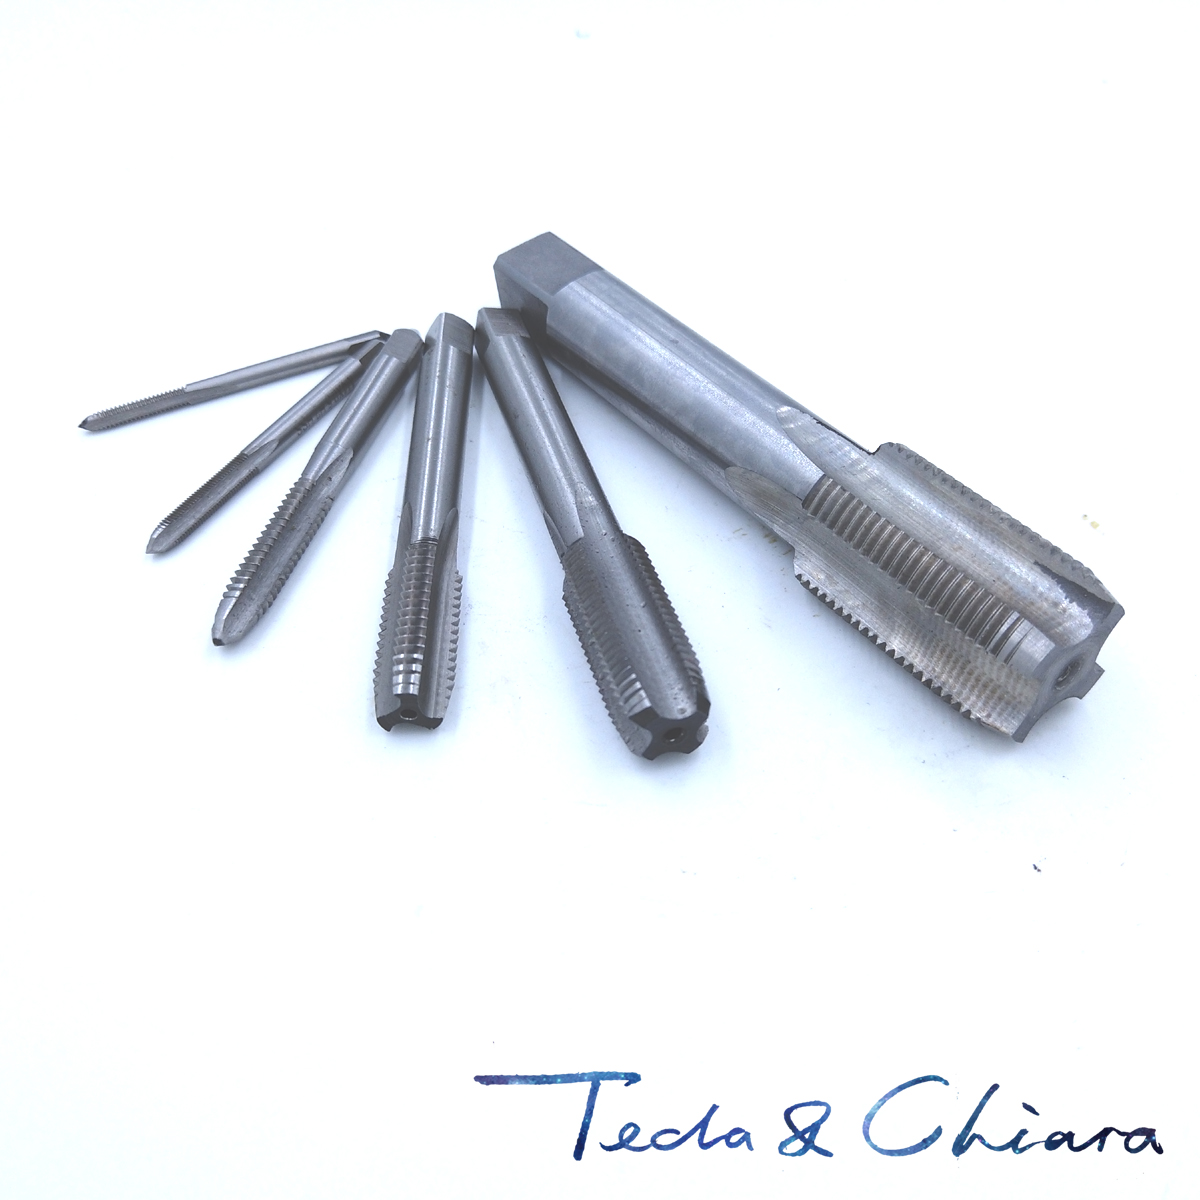 M2 M2.5 M3 M4 M5 M6 M7 M8 M9 M10 M12 M13 M14 M16 M18 M20 Metric HSS Left Hand Tap Pitch Threading Tools For Mold Machining LH